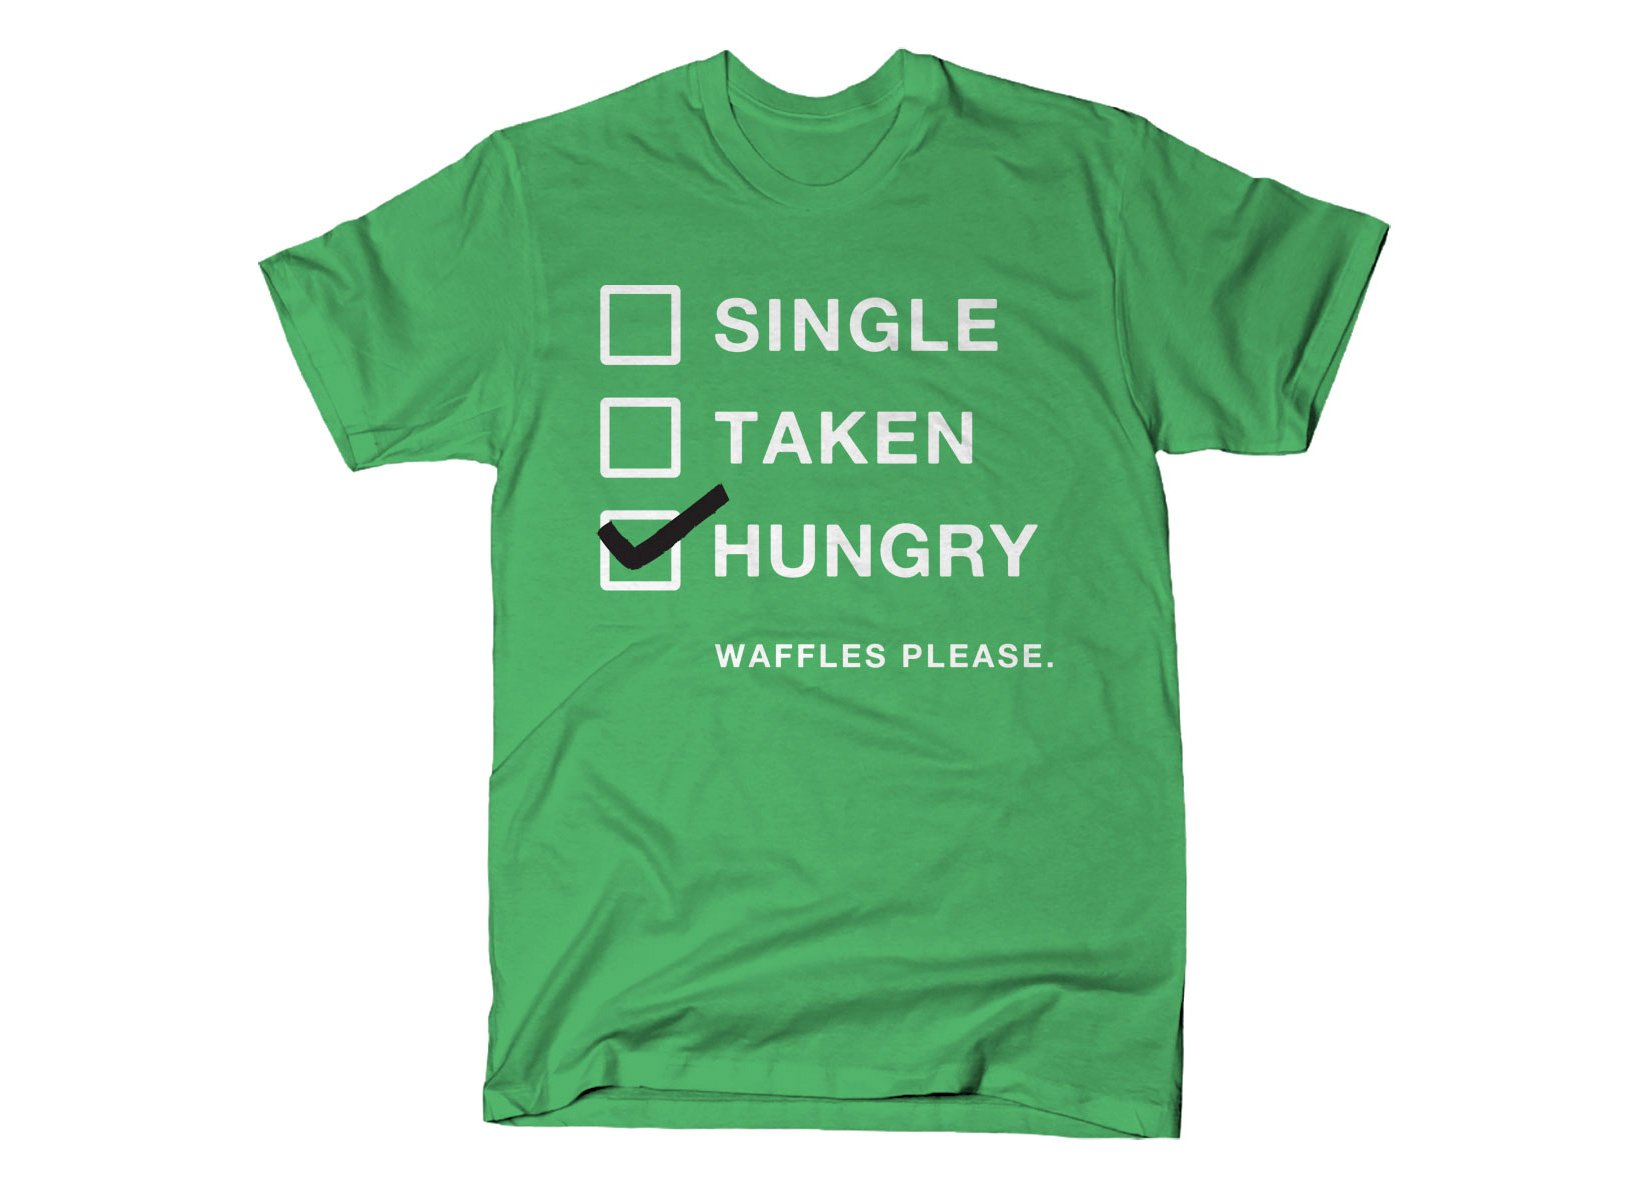 Single, Taken, Hungry on Mens T-Shirt